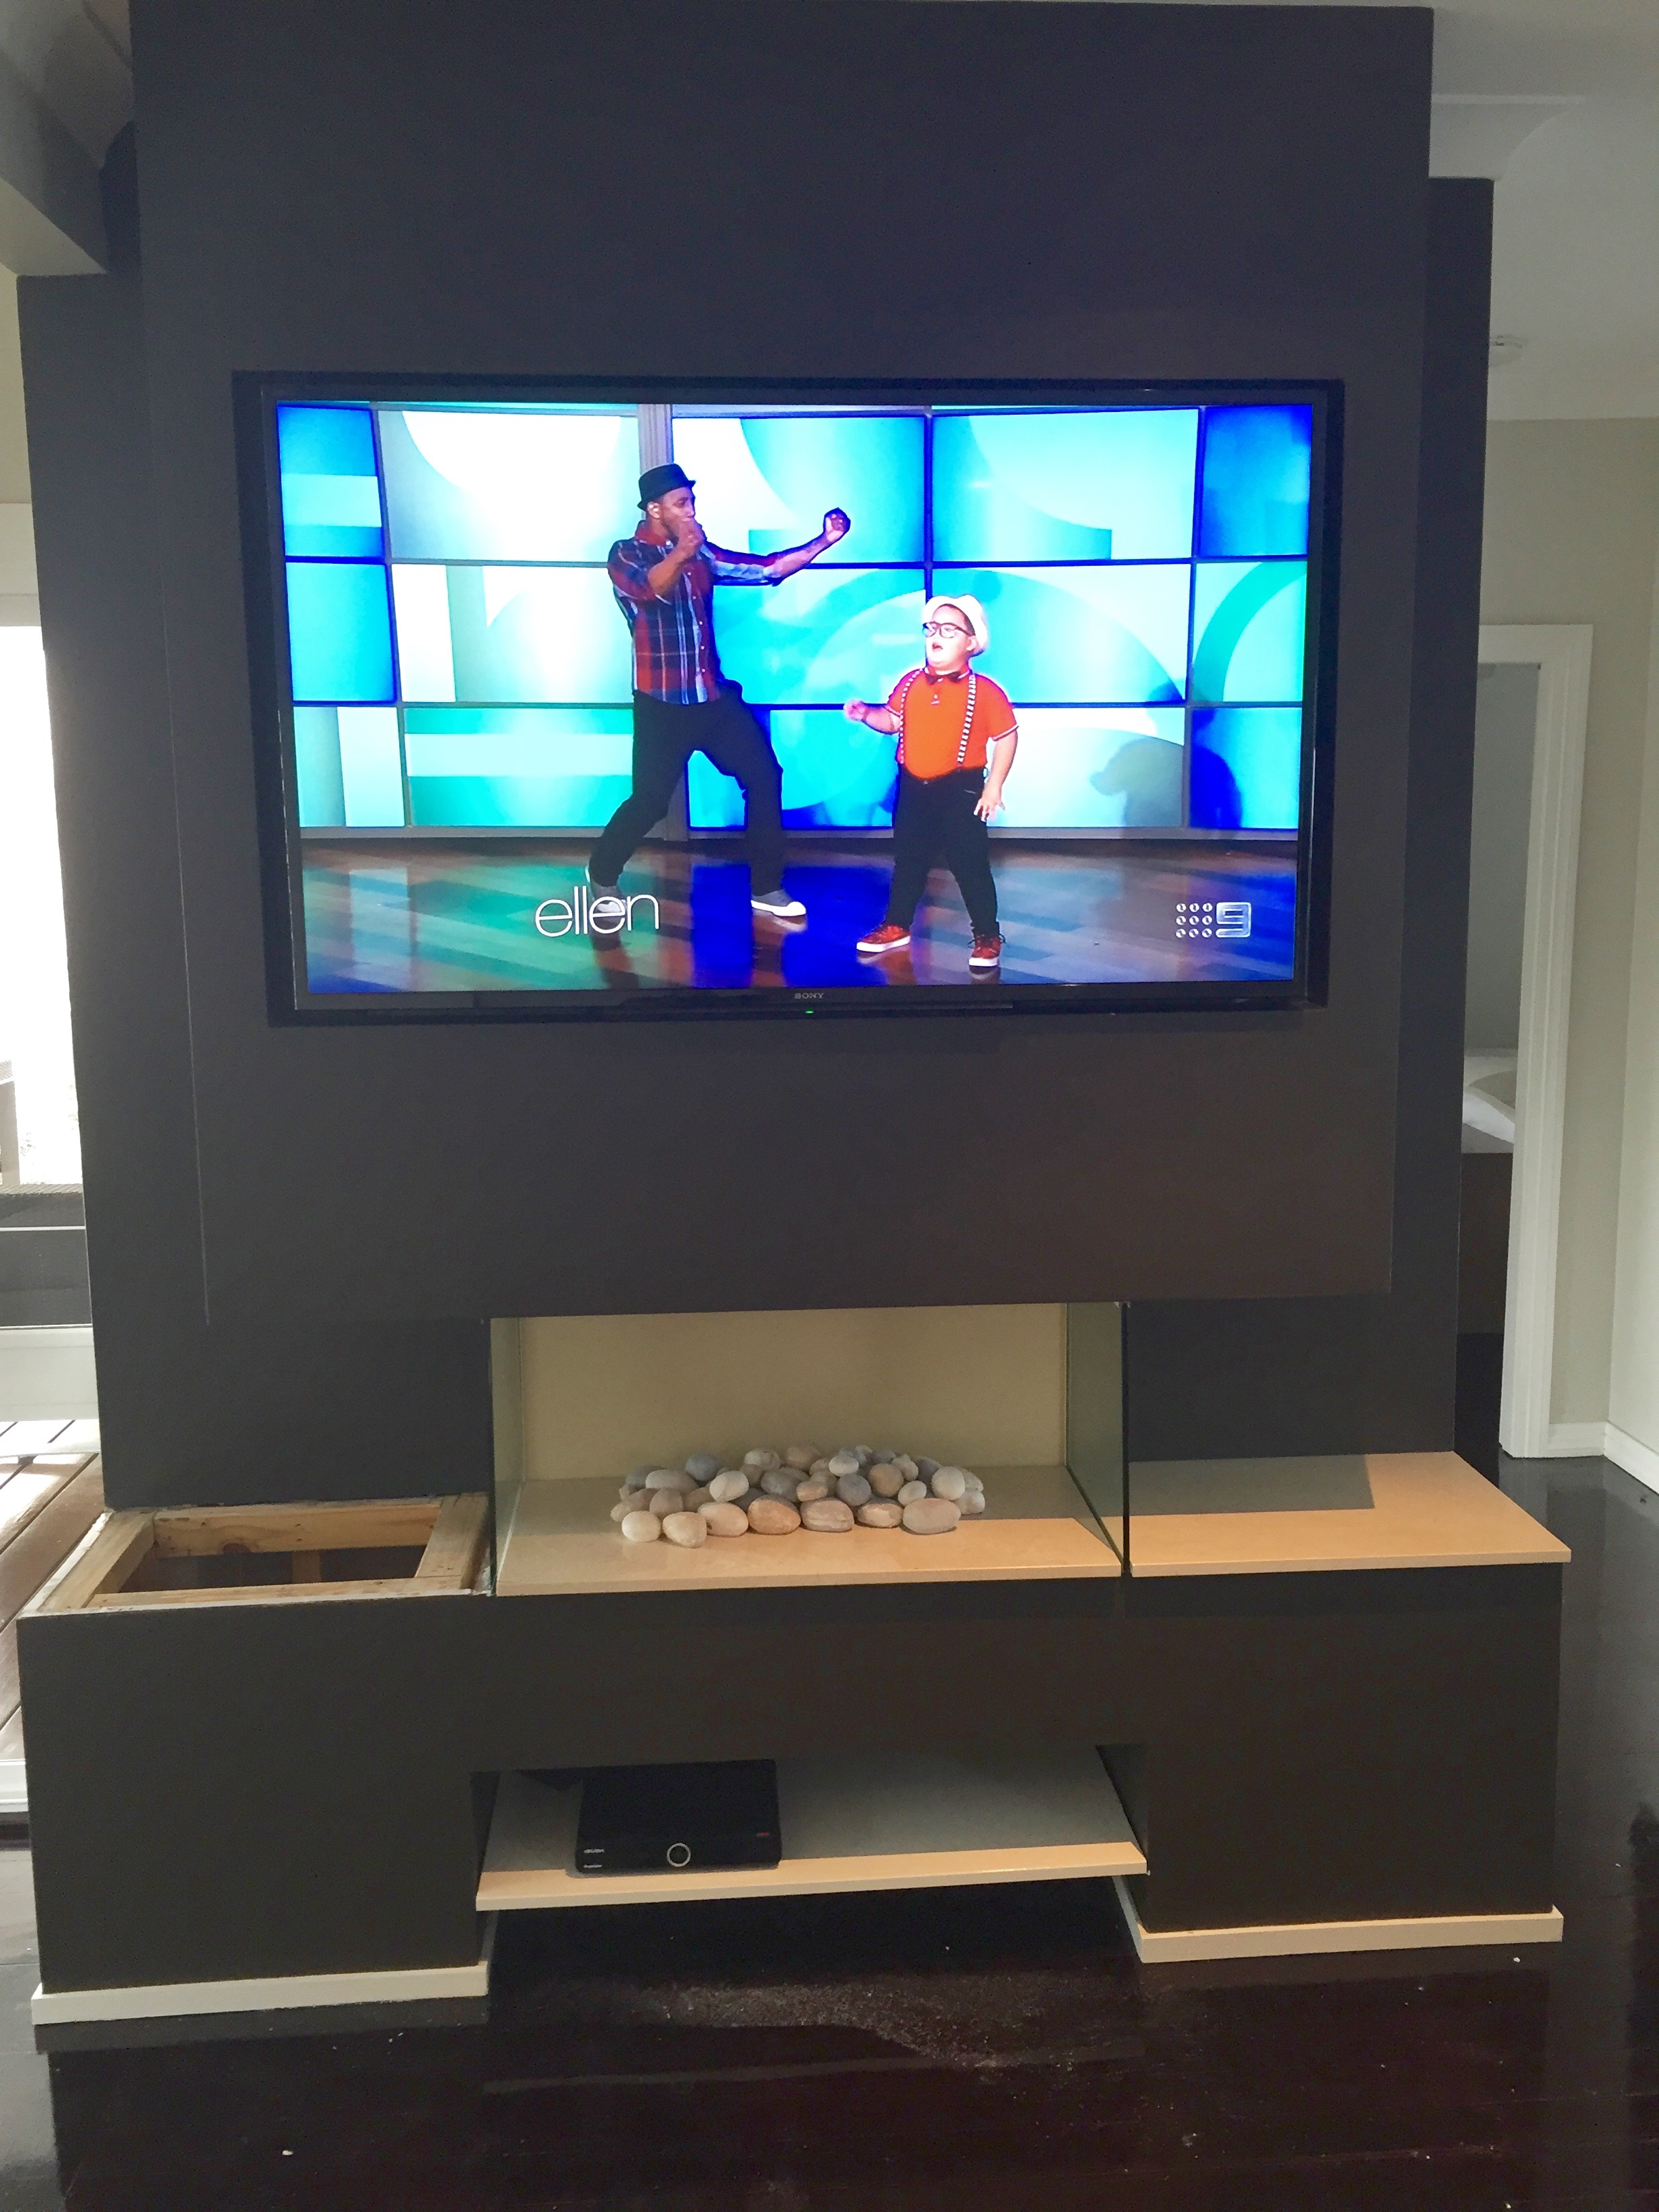 reliable service archives tv installation northern beaches and north shore sydney. Black Bedroom Furniture Sets. Home Design Ideas